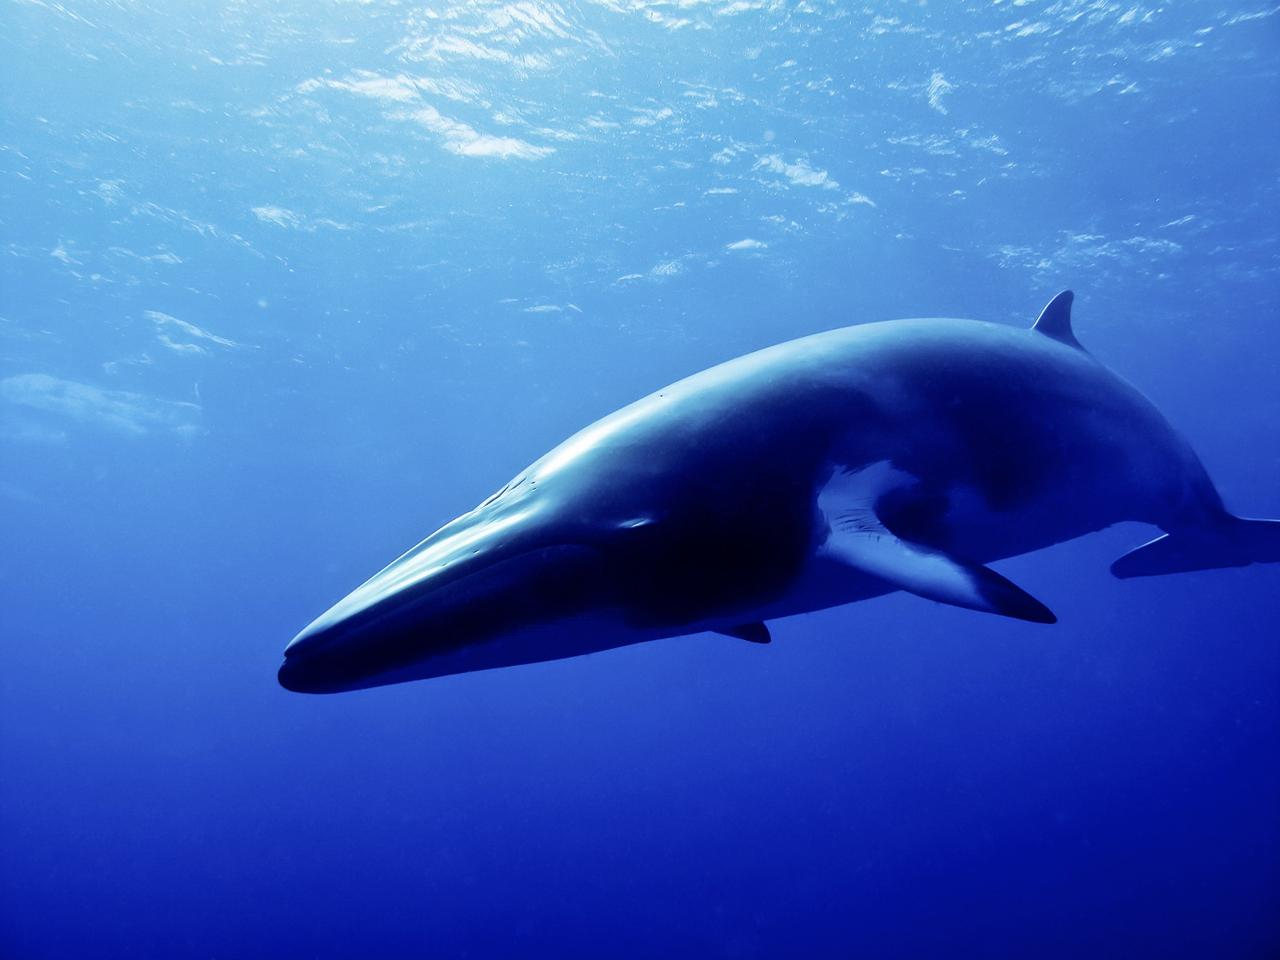 Strange sounds recorded in the Mariana Trench may be a new dialect of whale song, according to researchers